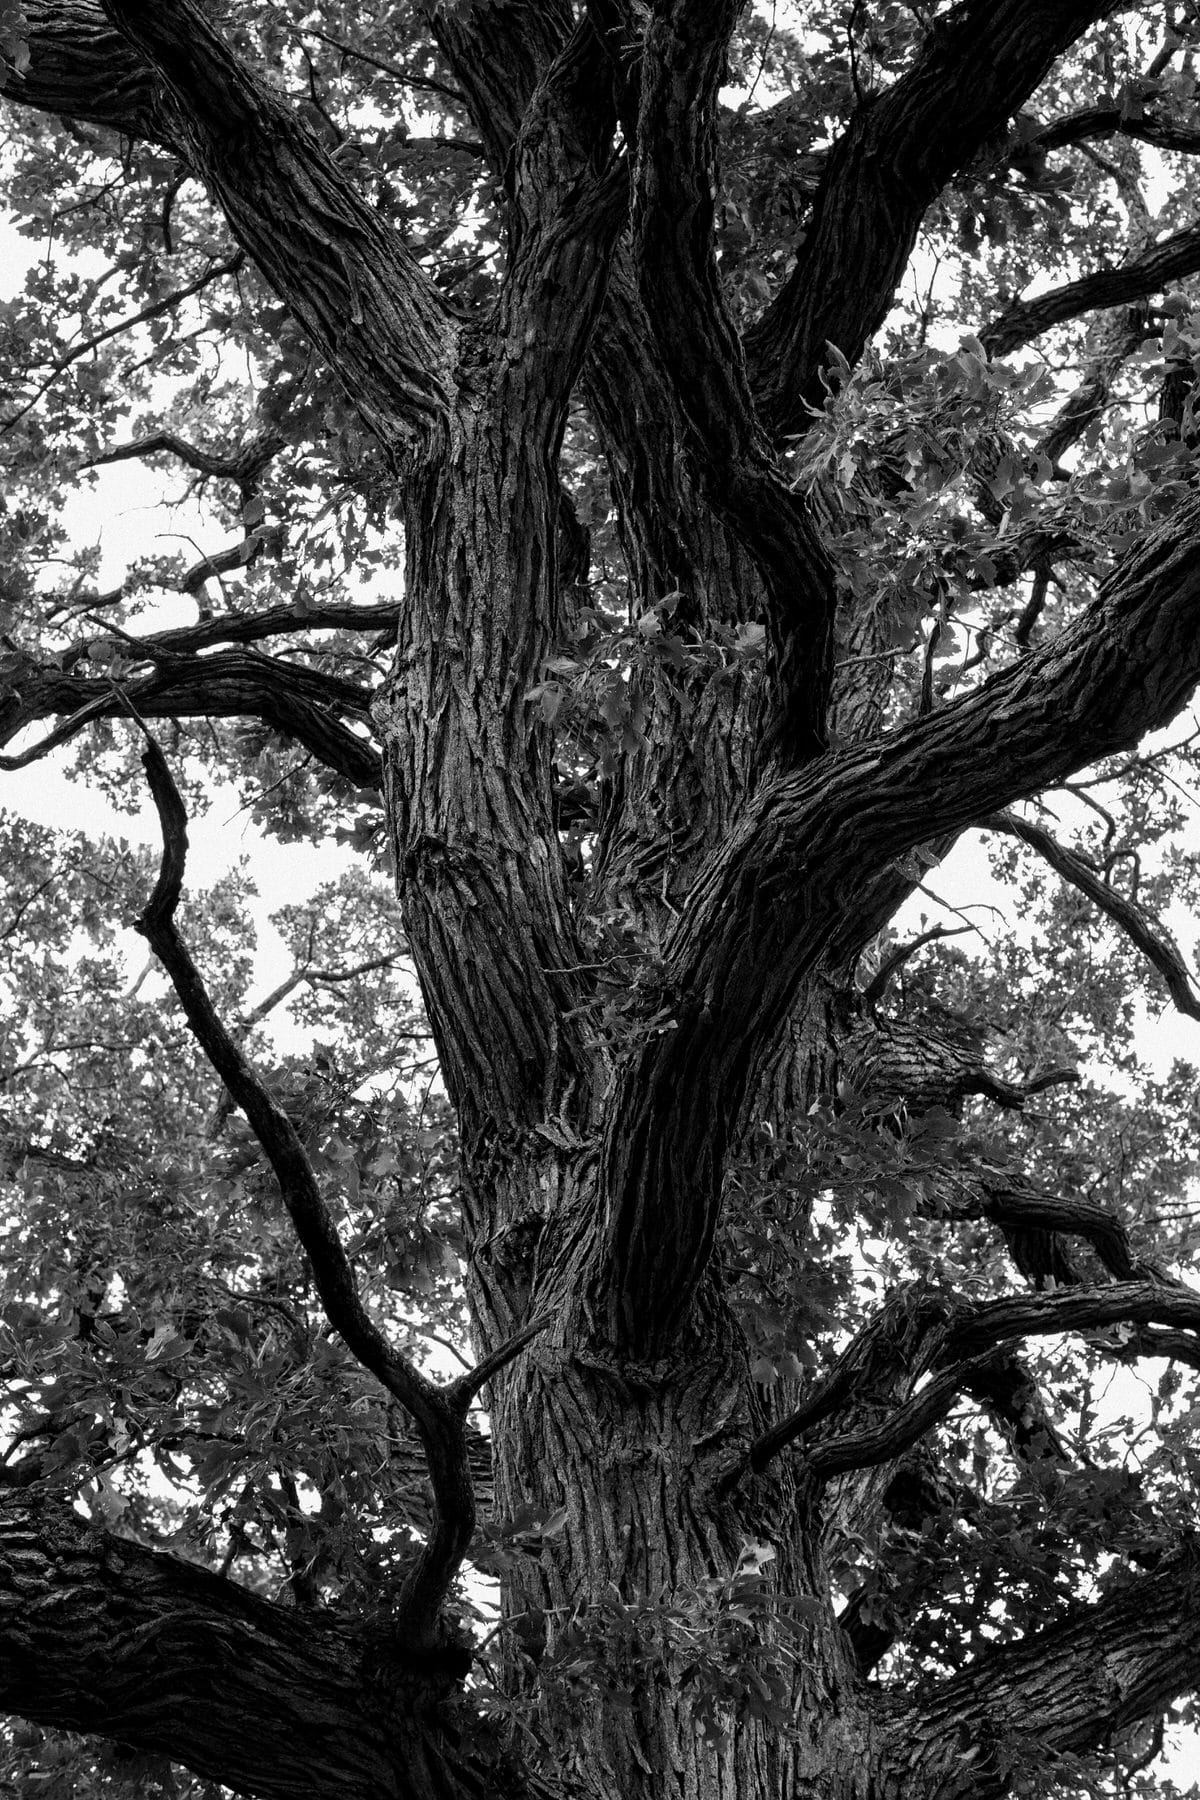 Oak-Tree-Fond-du-Lac-Wisconsin-black-and-white-fine-art-photography-by-Studio-L-photographer-Laura-Schneider-_12036